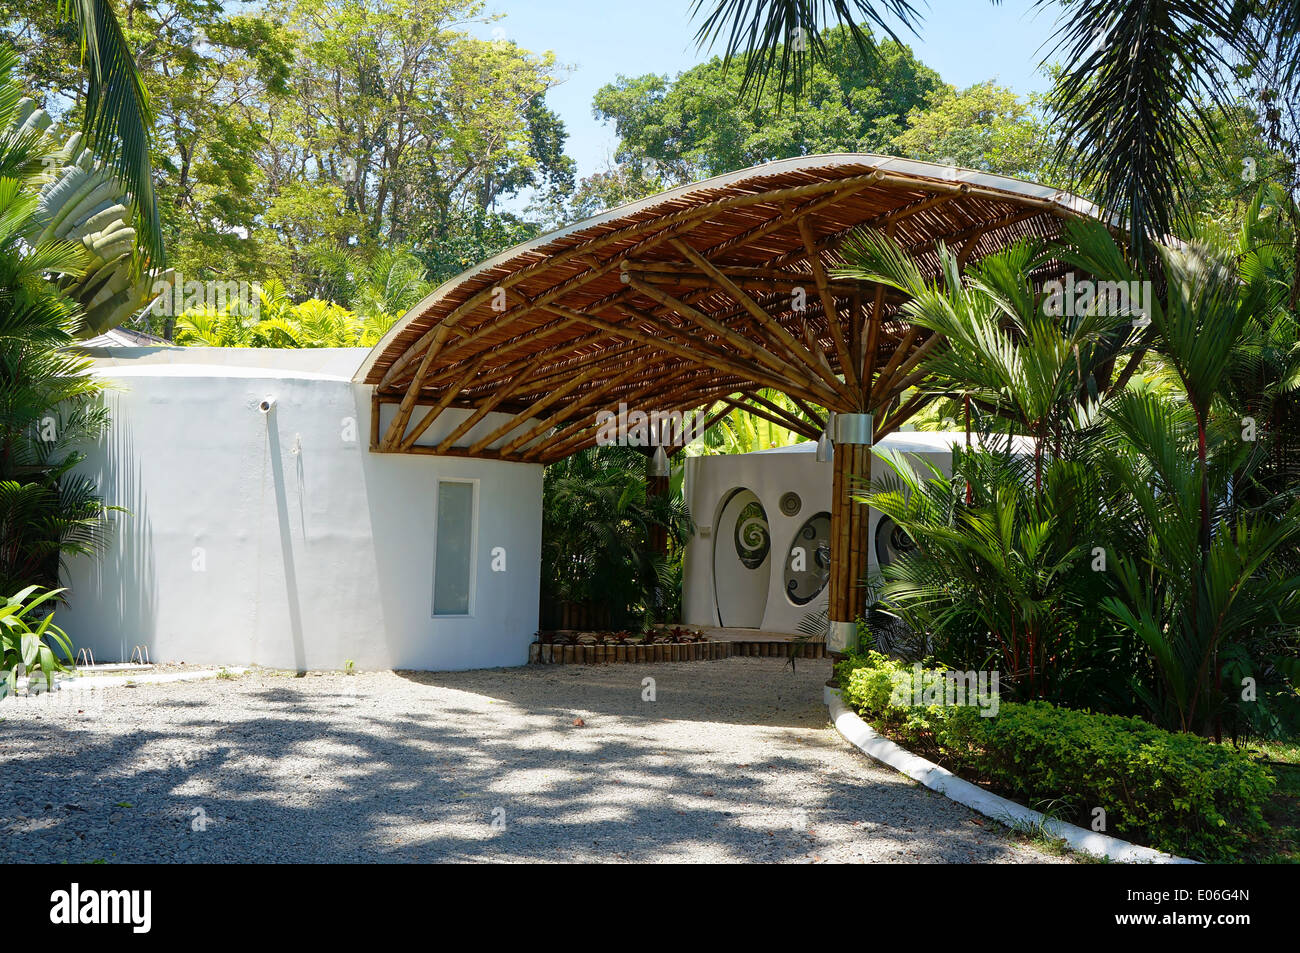 Tropical architecture, covered entrance made with bamboo, Caribbean, Puerto Viejo, Costa Rica - Stock Image